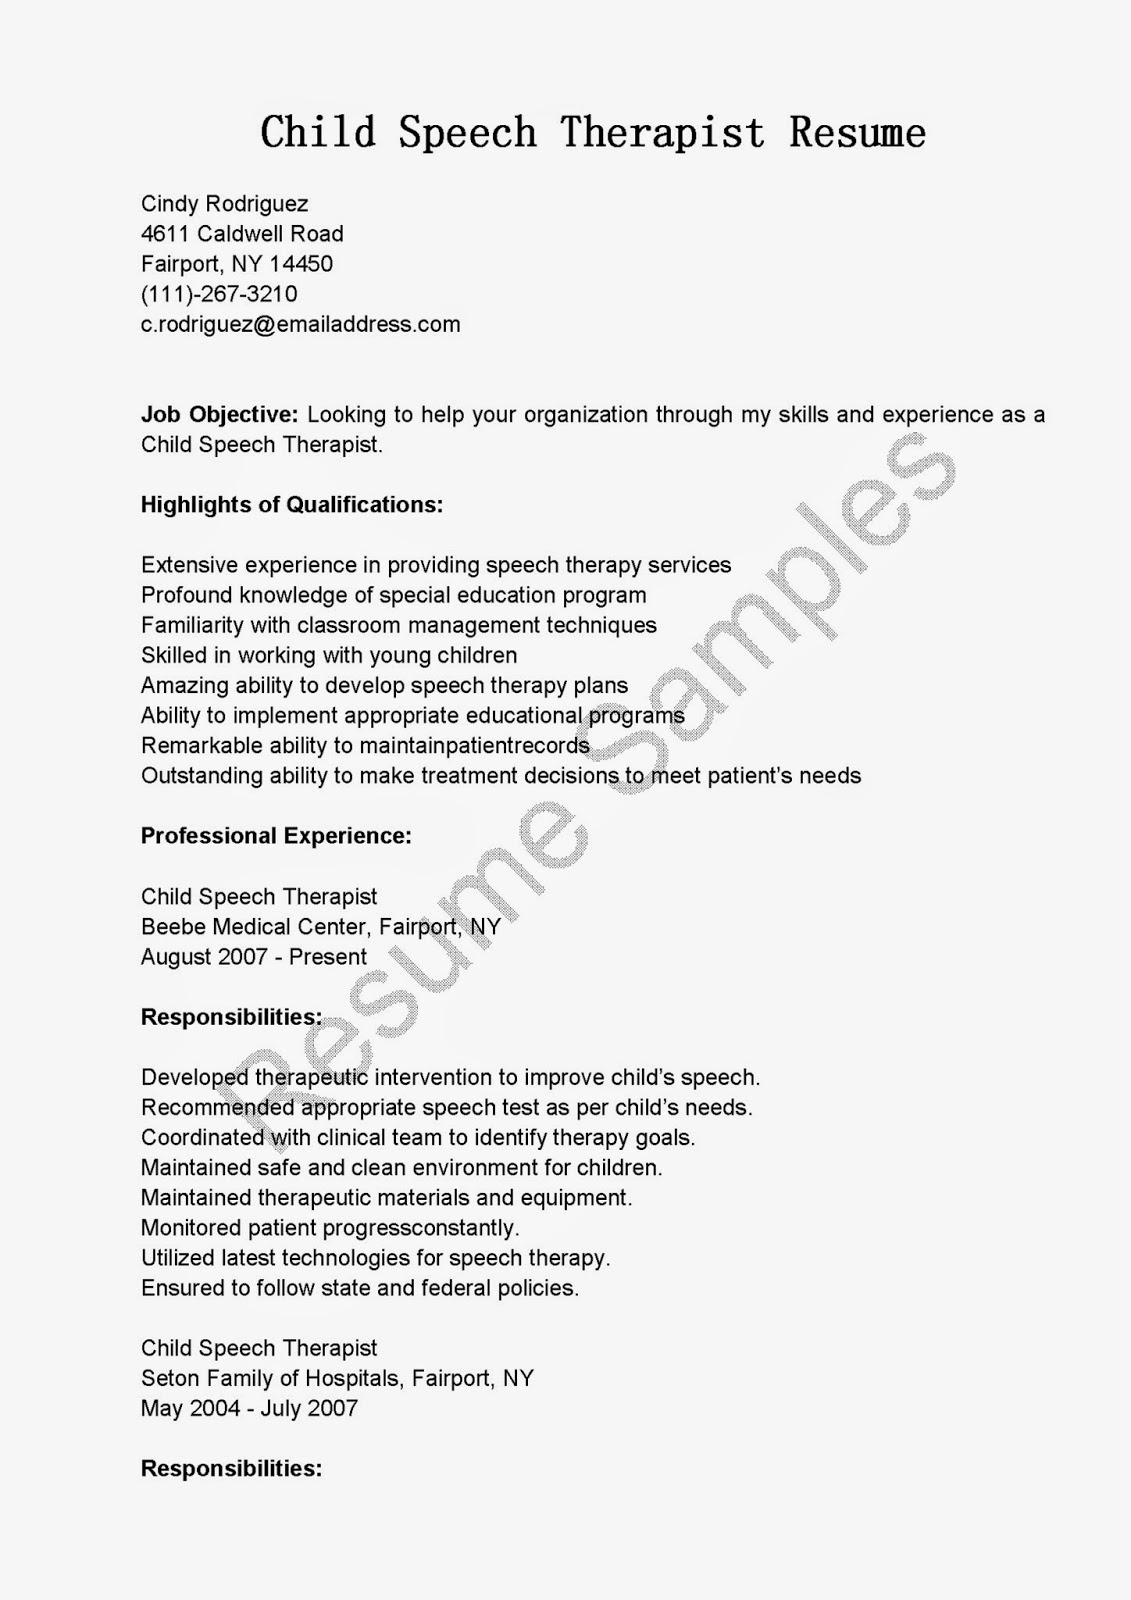 Occupational Therapy Resume Examples Resume Summary Healthcare Advice  Google Inside Charming Resume Cna Certified Nursing Assistant  Massage Therapy Resumes